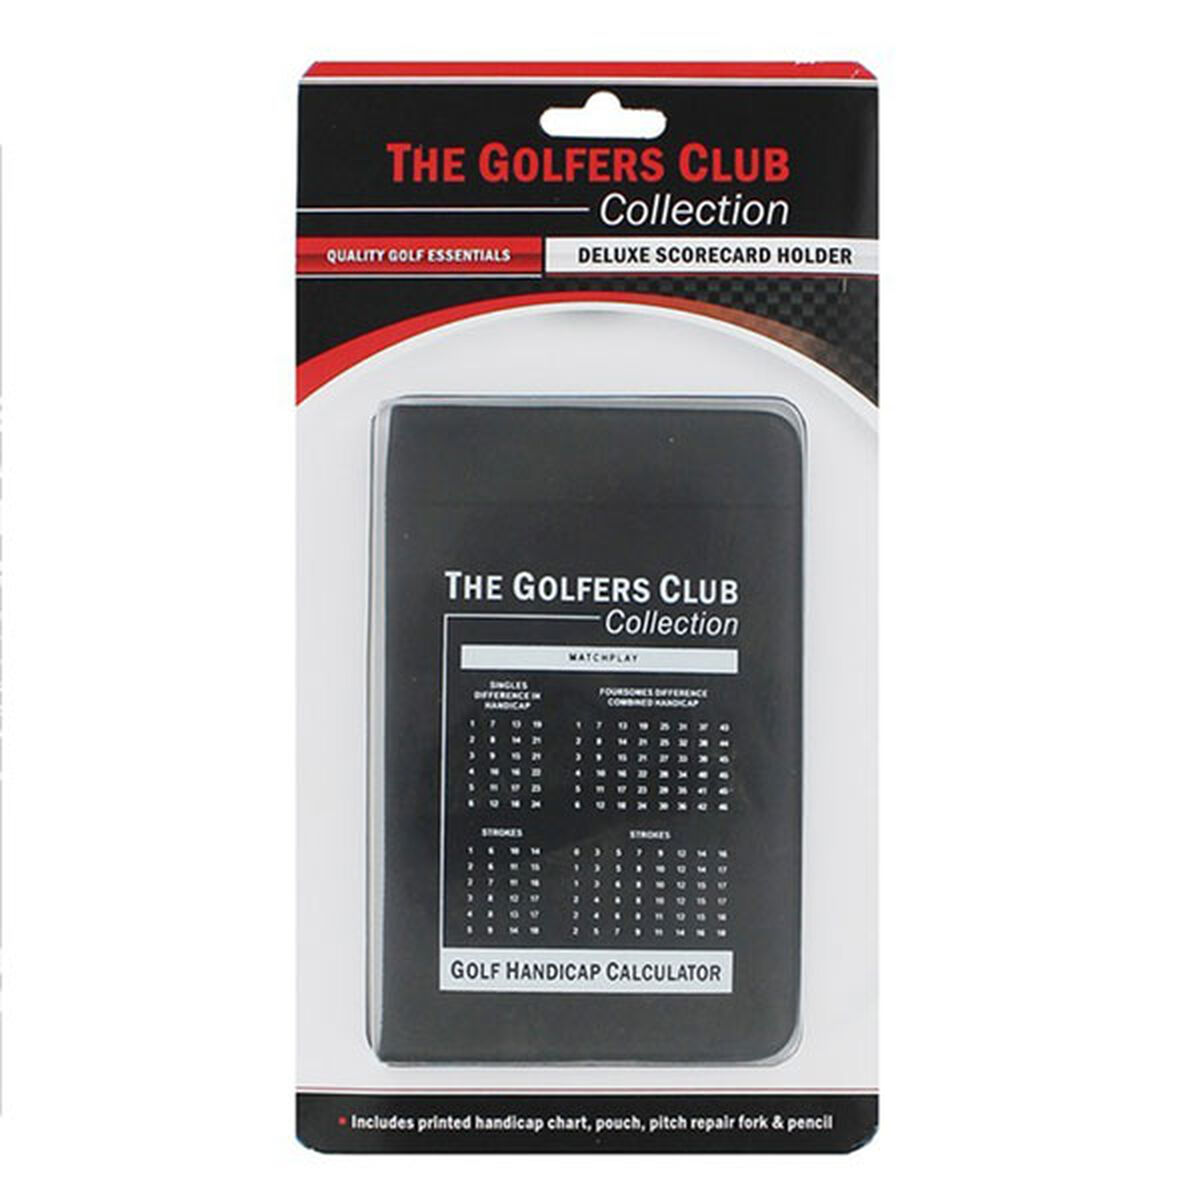 The Golfers Club Deluxe Scorecard Holder, Male, One size | American Golf